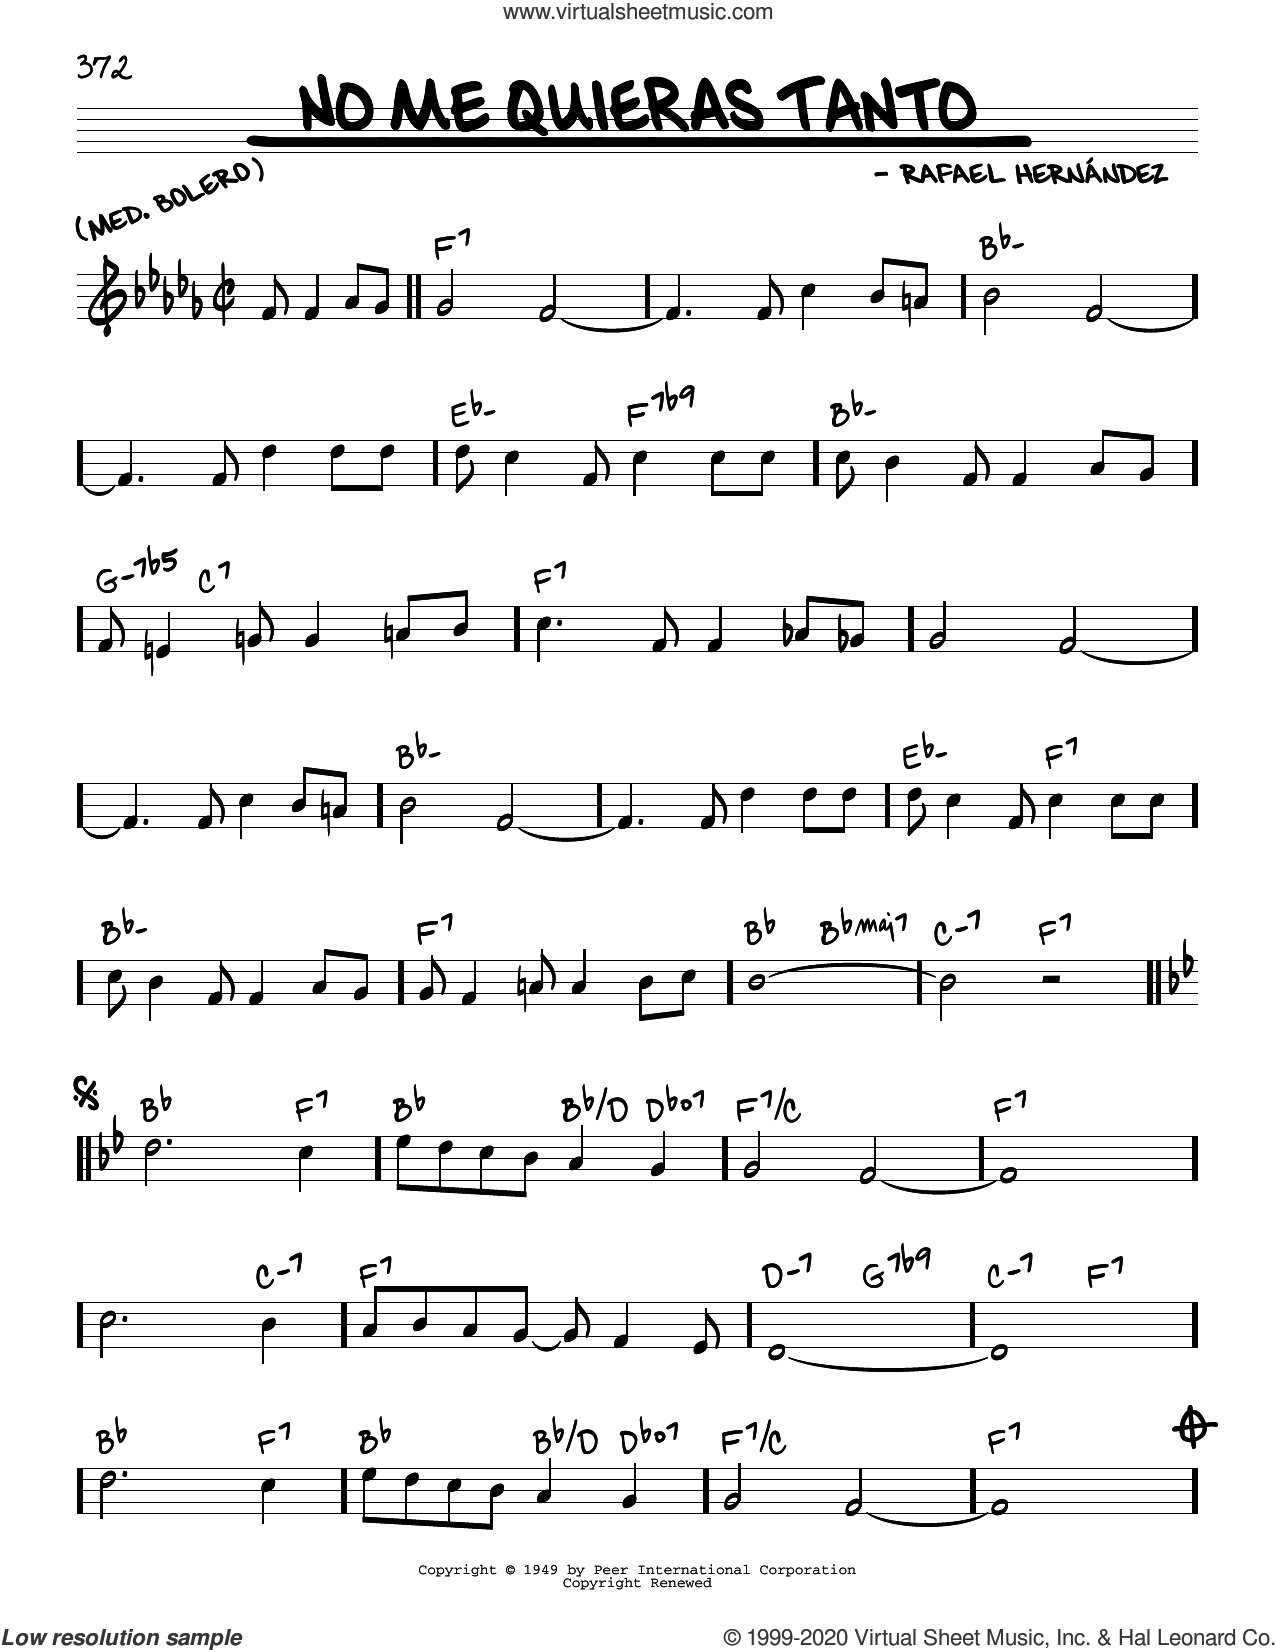 No Me Quieras Tanto sheet music for voice and other instruments (real book) by Rafael Hernandez, intermediate skill level